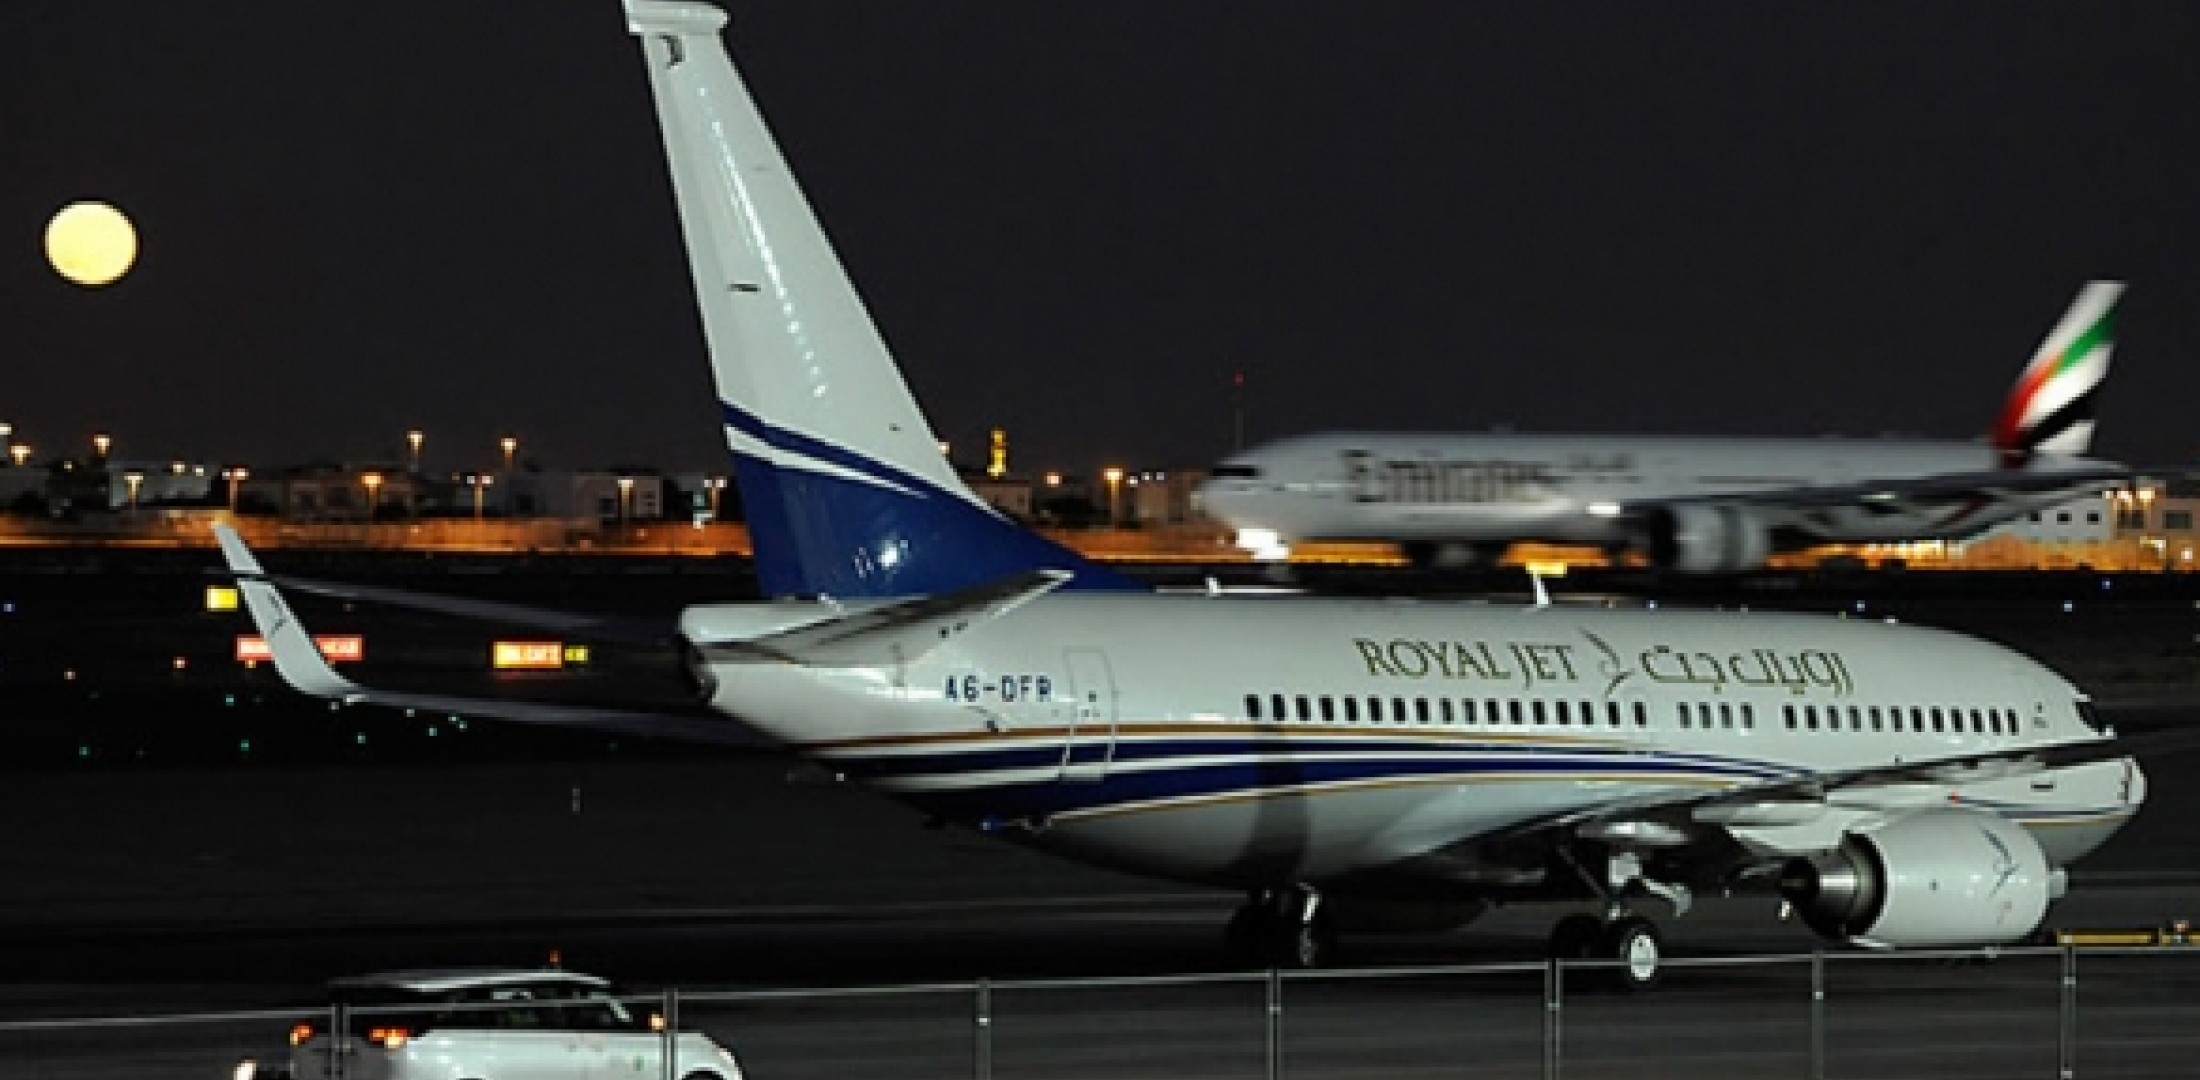 Royal Jet Boeing BBJ